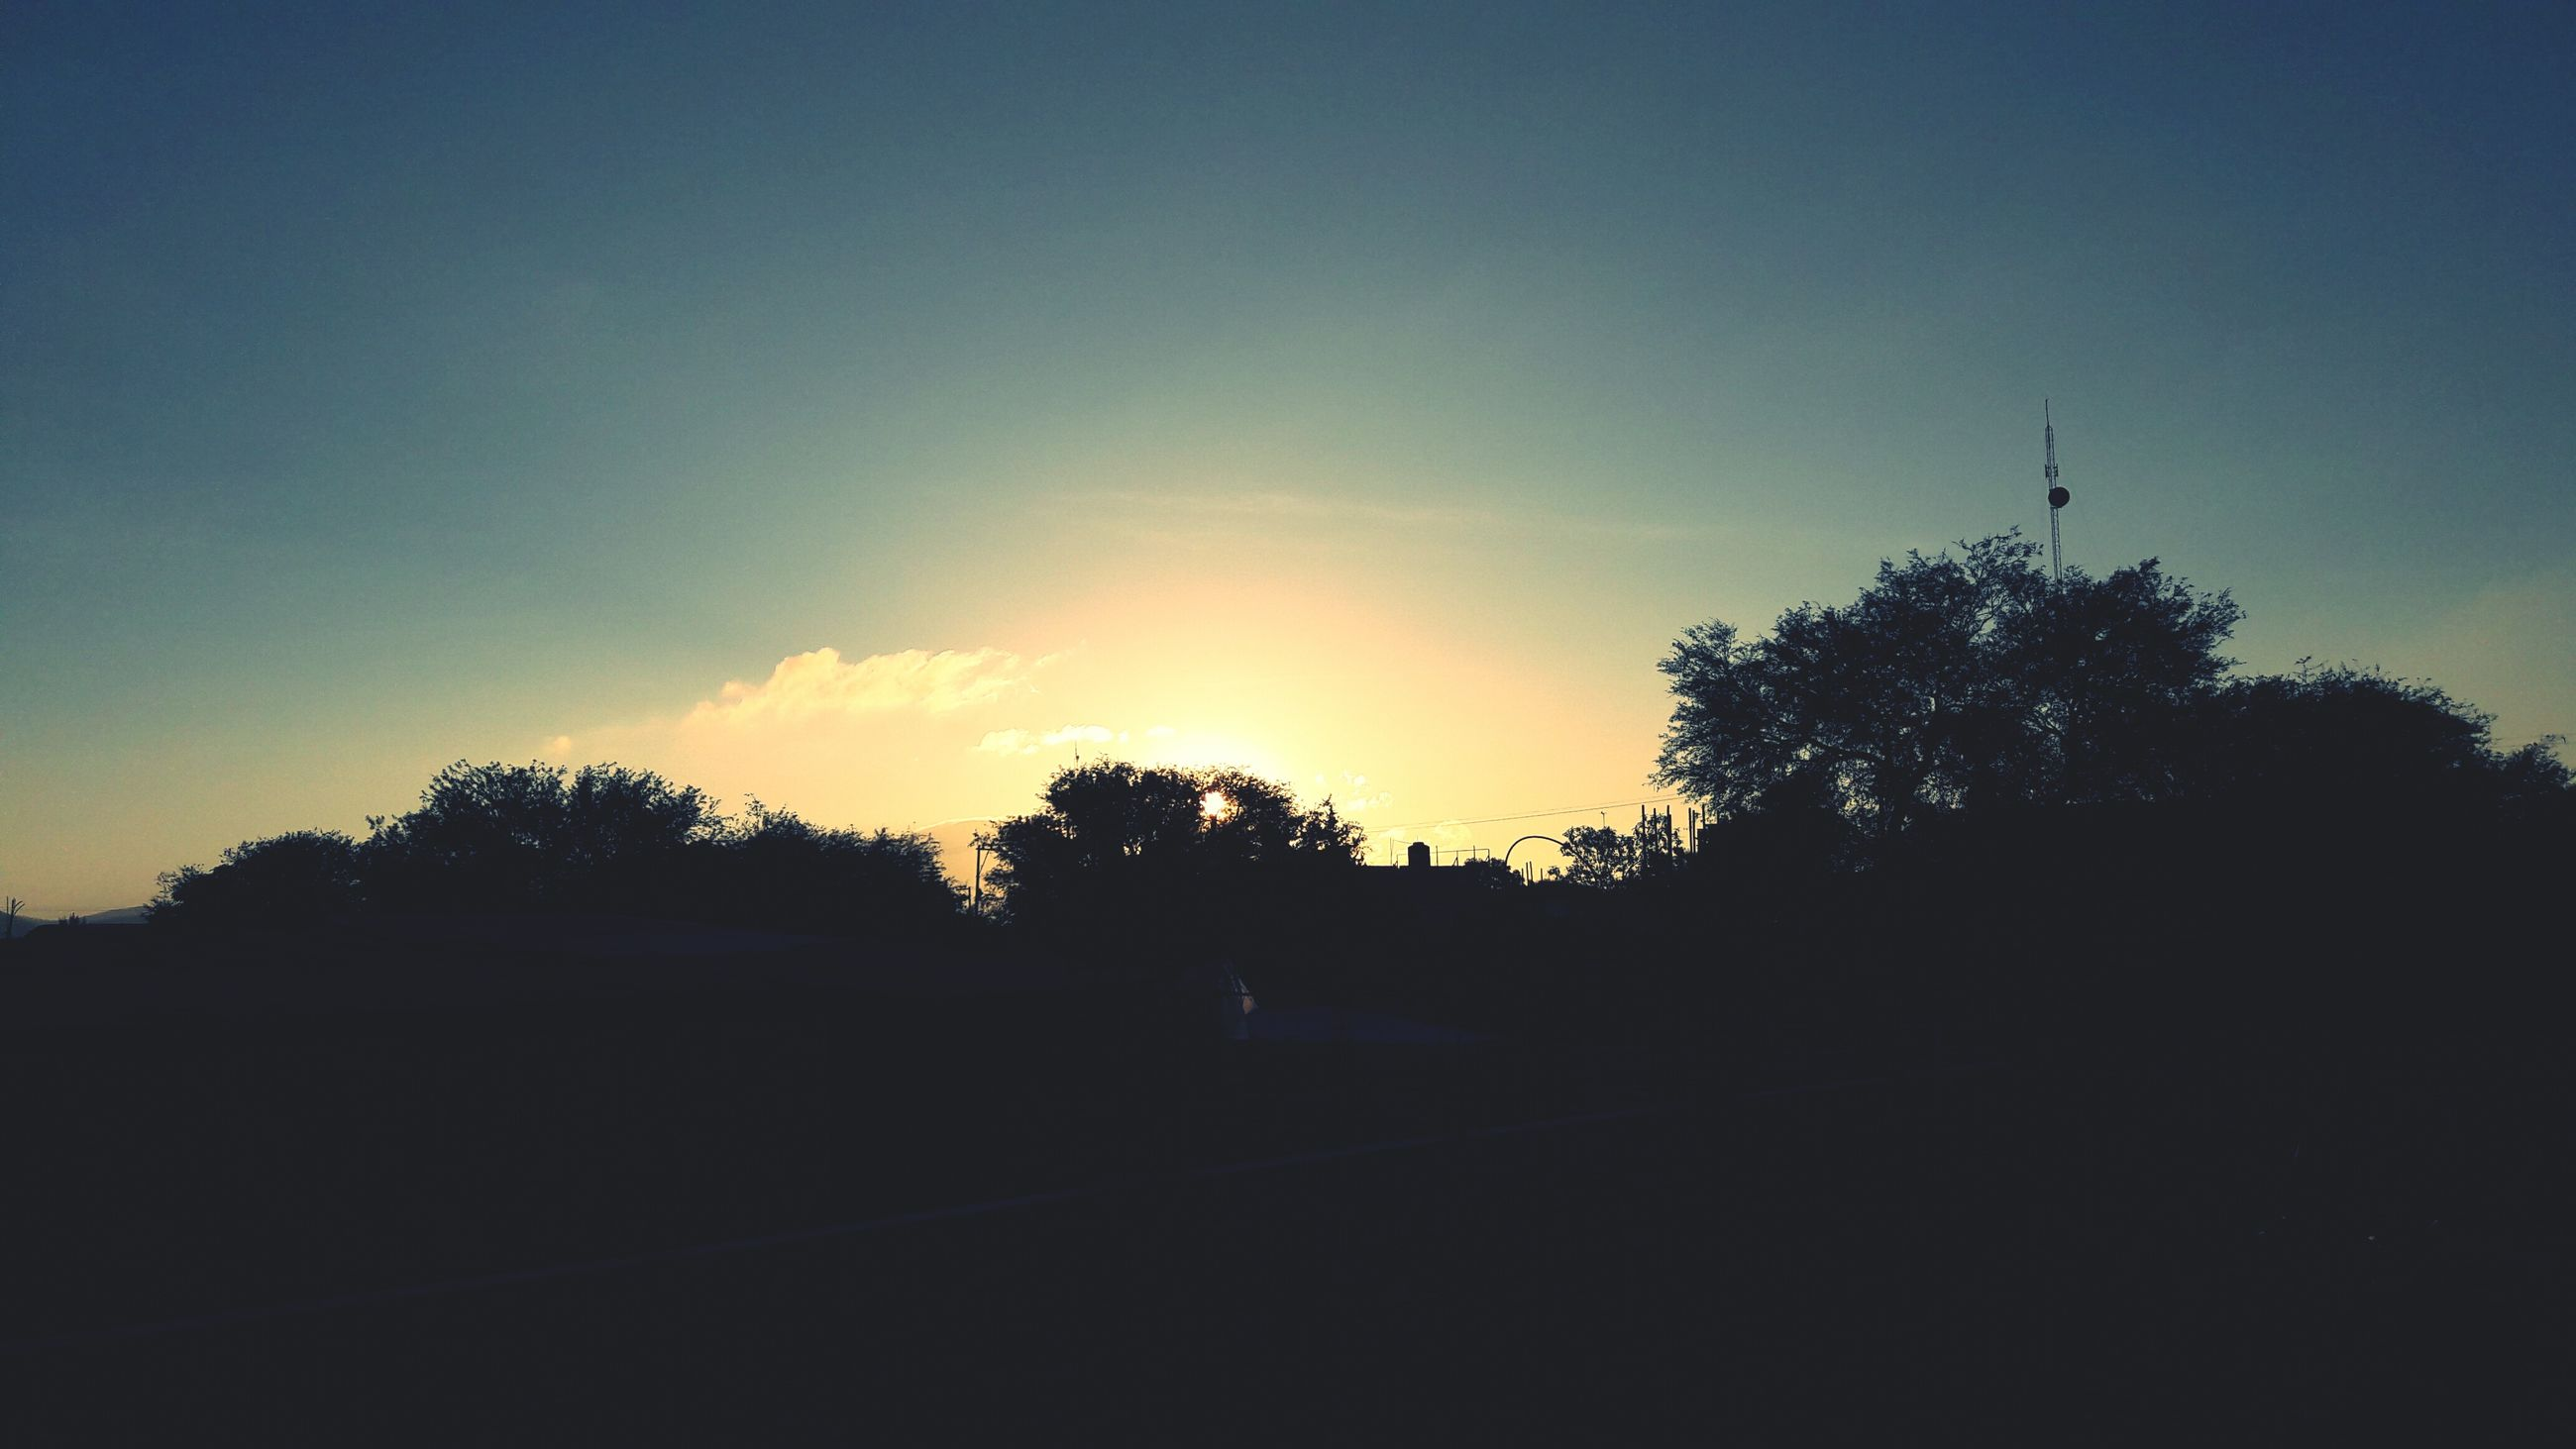 sunset, tree, silhouette, no people, outdoors, nature, sky, beauty in nature, scenics, day